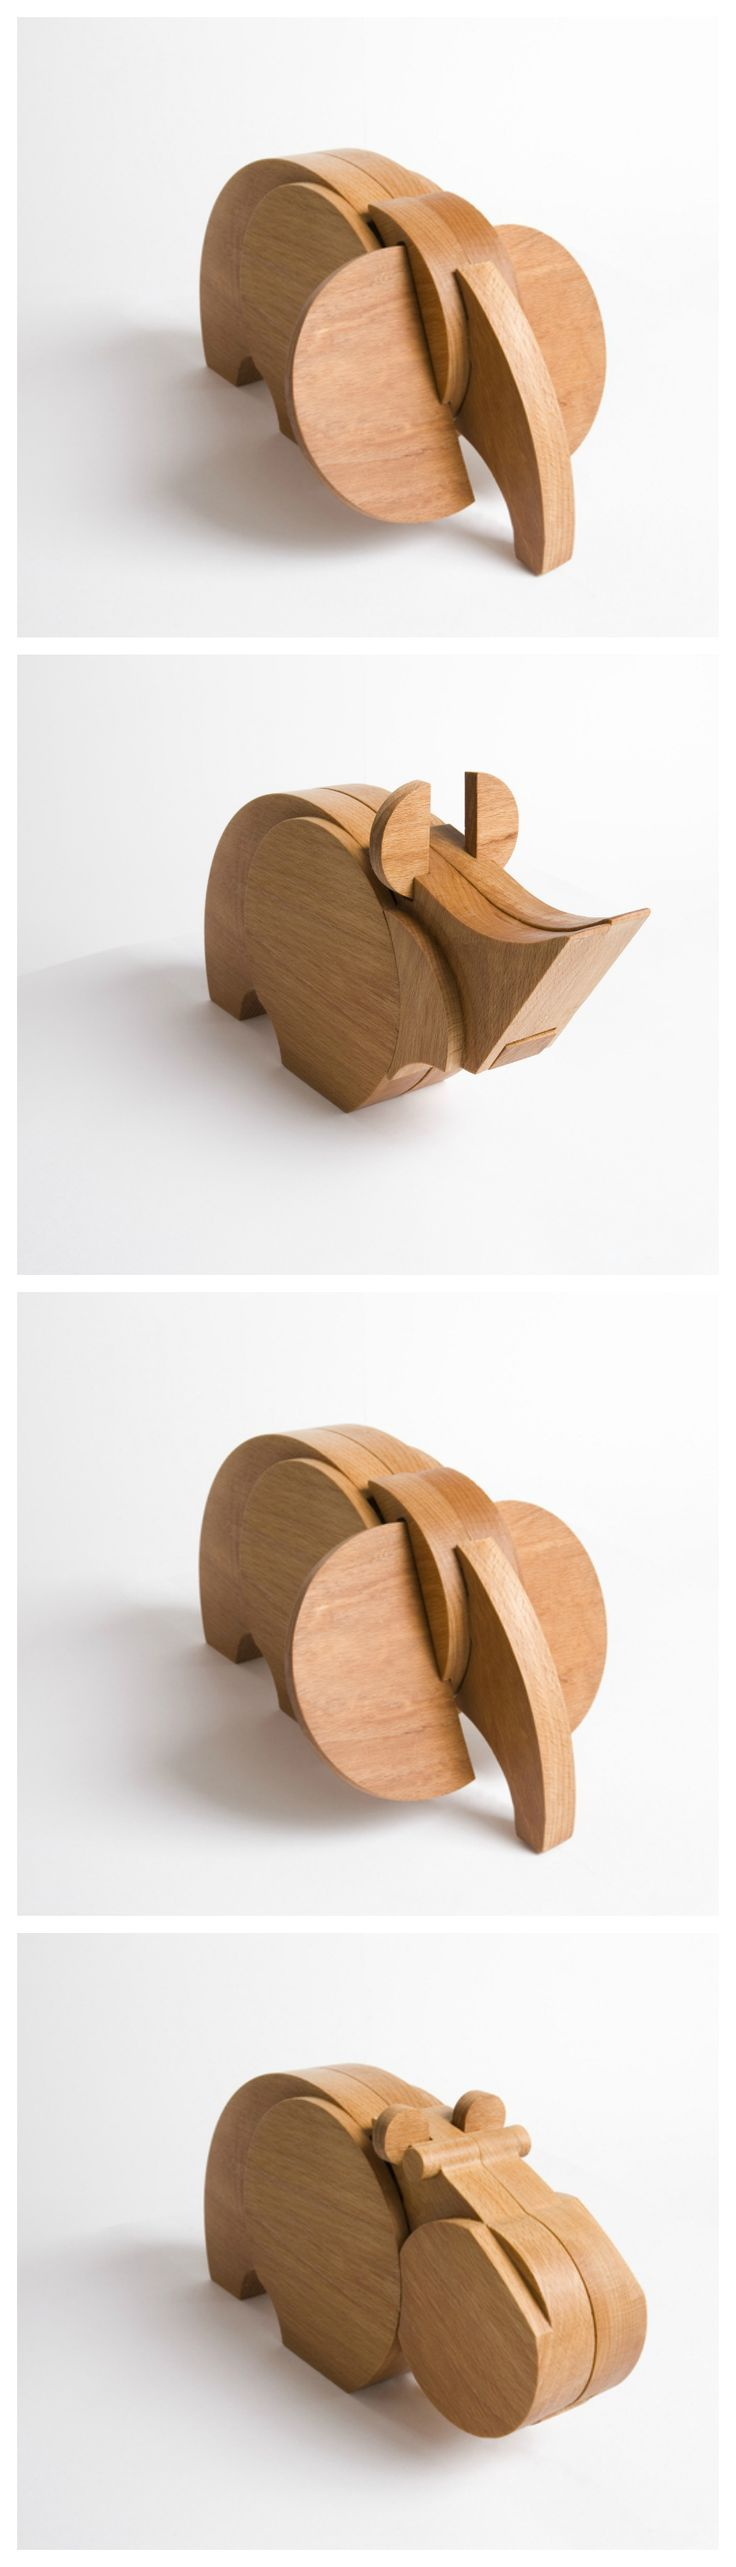 Mastodonts by Wodibow - wood + magnets - simple design, multiple combinations